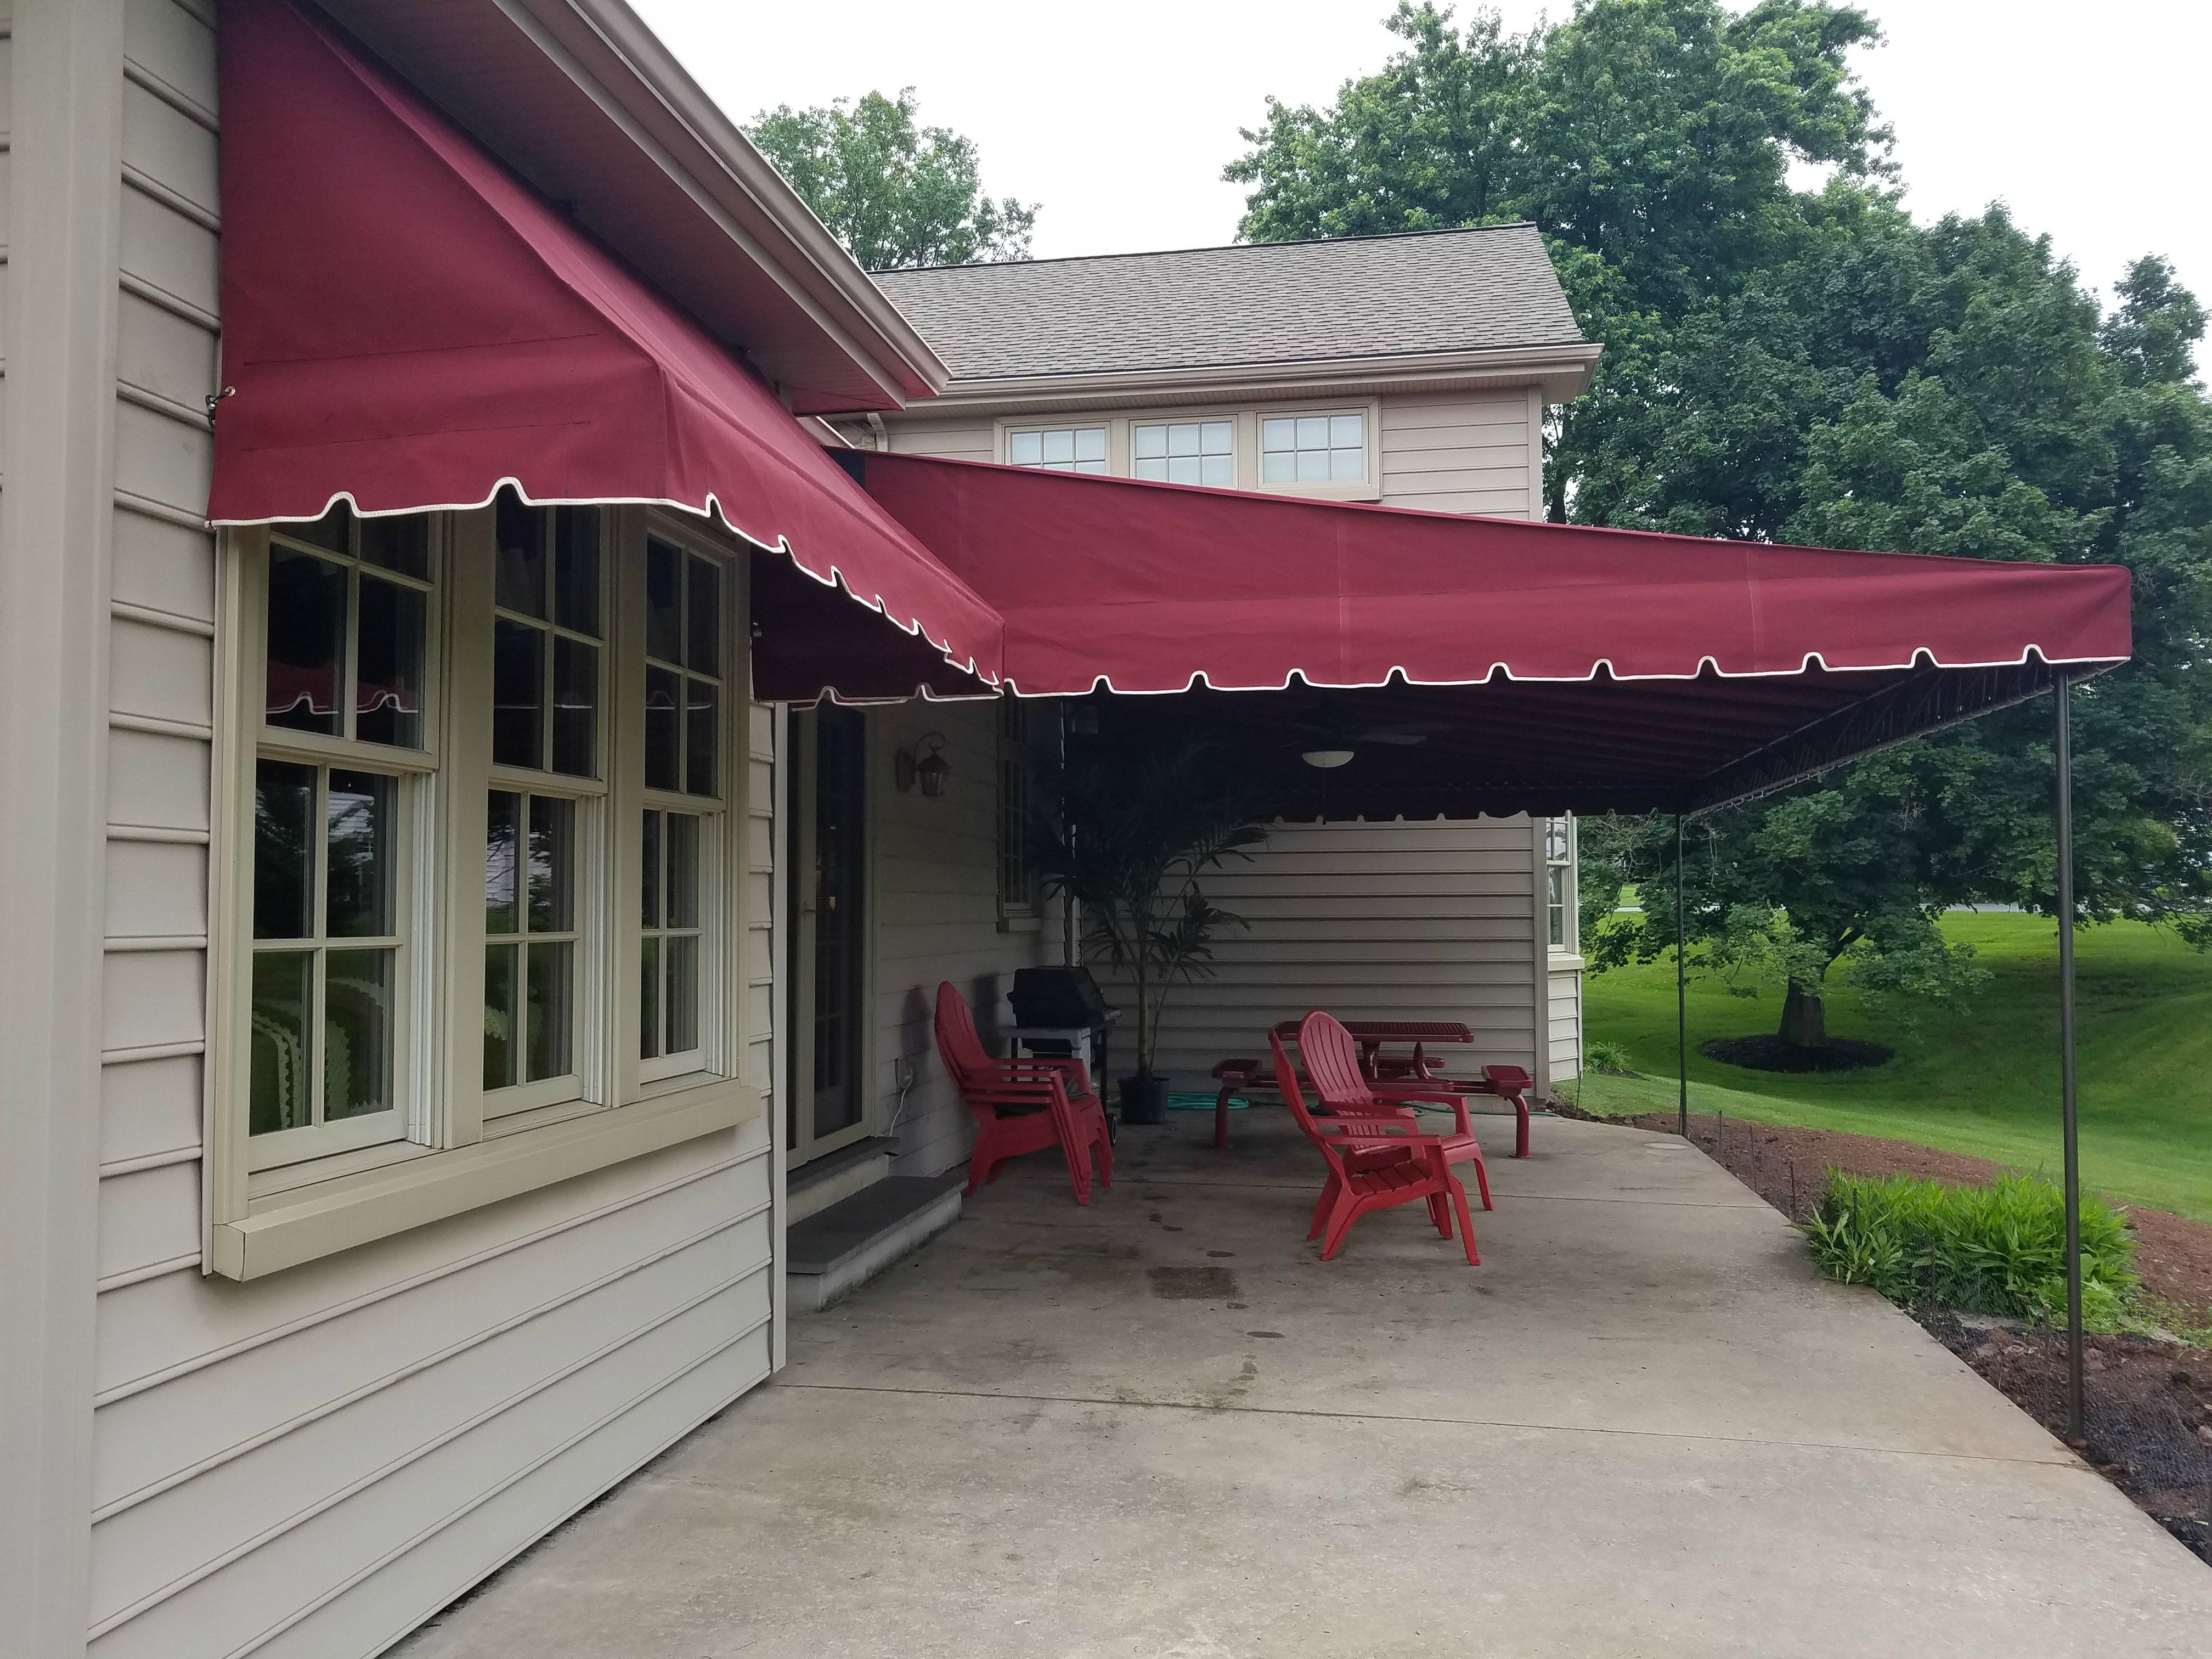 image patio sunair iproview awning video solar for decks screens proview gallery awnings manufacturers retractable stationary